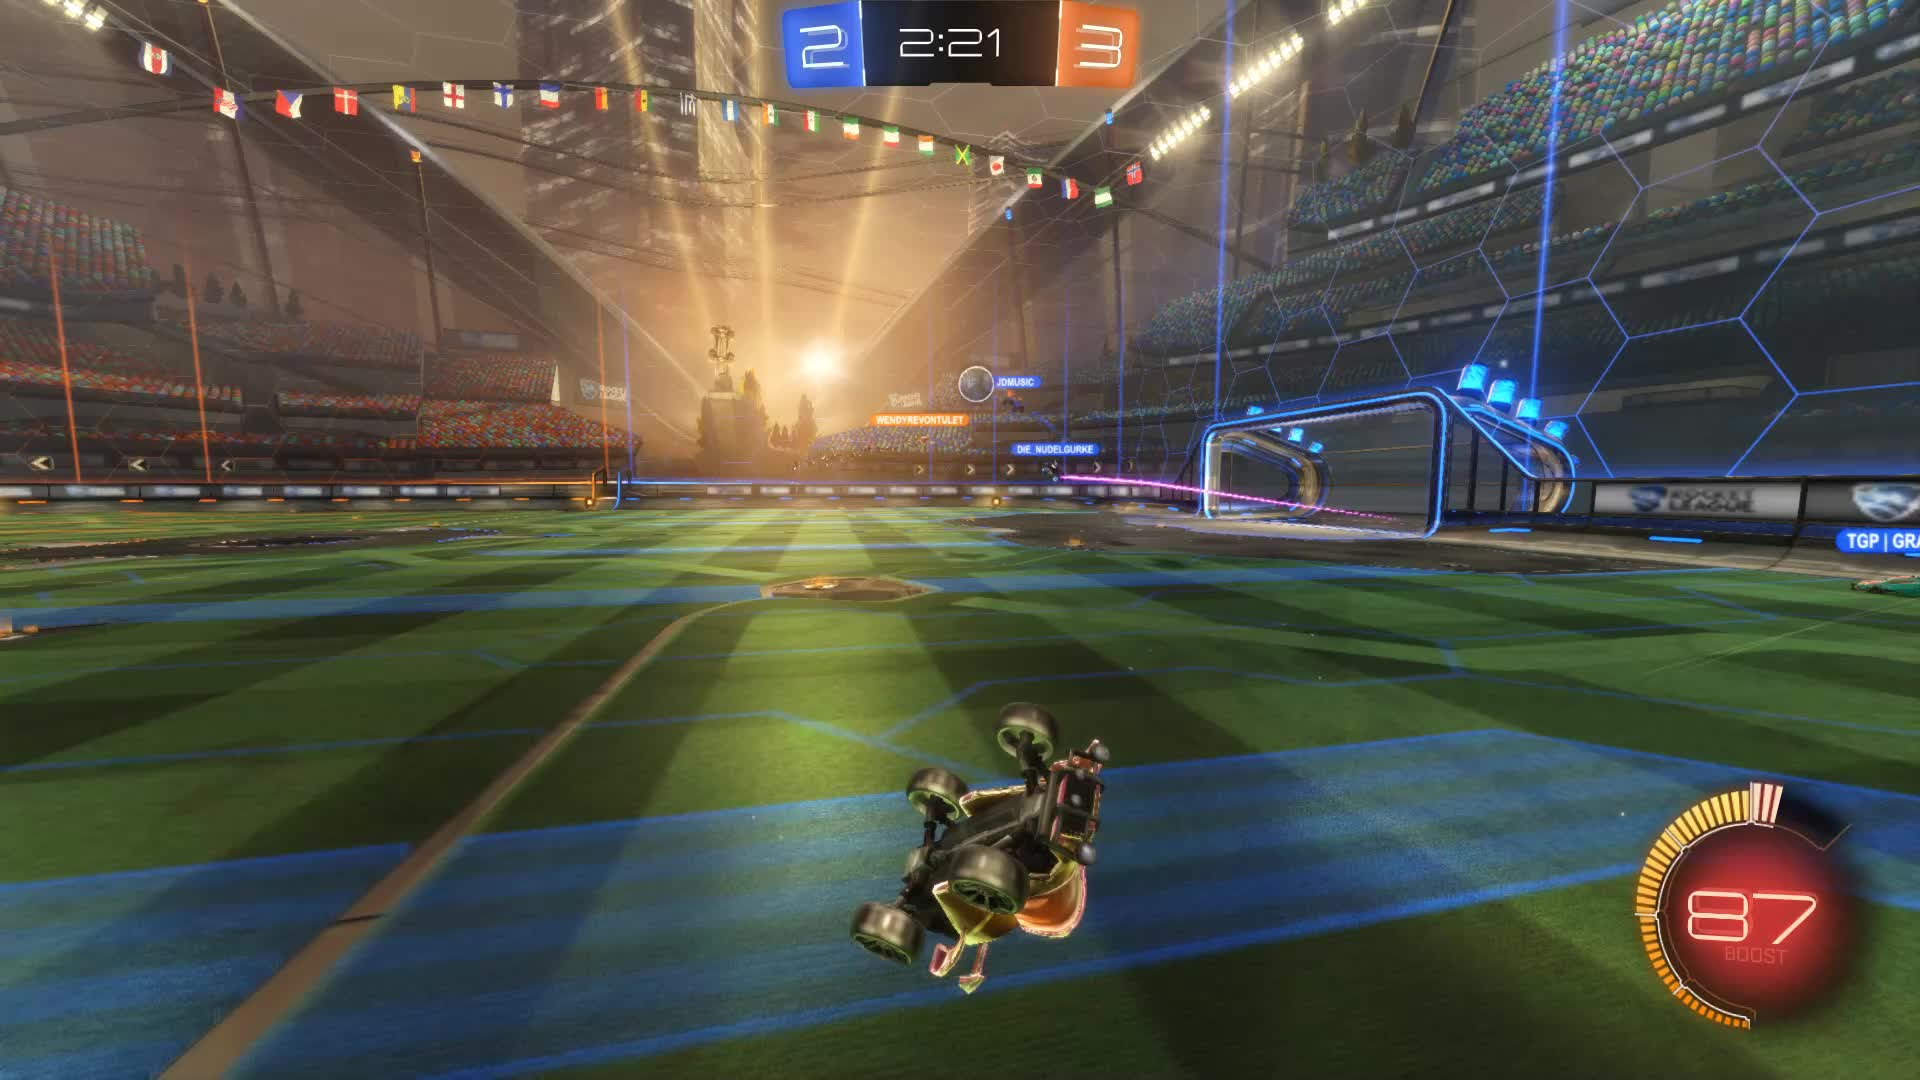 Gif Your Game, GifYourGame, Goal, Rocket League, RocketLeague, SCOTLAND FOREVER, Goal 6: SCOTLAND FOREVER GIFs